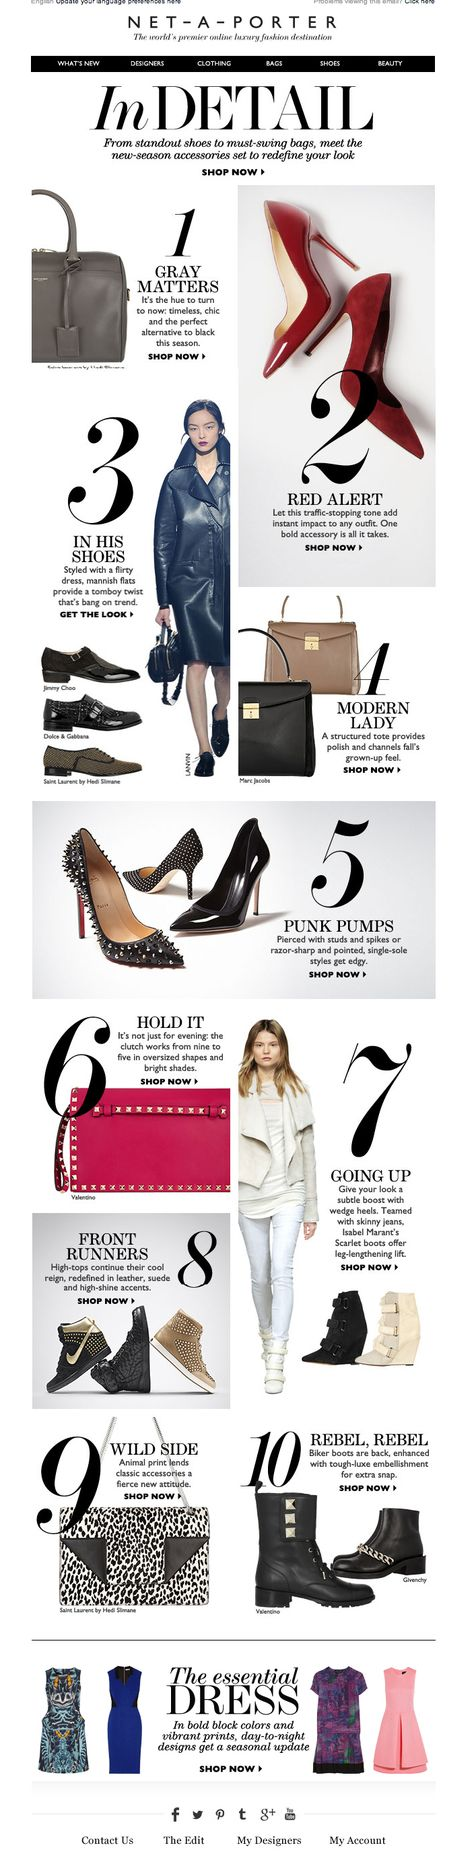 #newsletter Net a porter 08.2013 subject:  Perfect 10: The ultimate new-season shoe and bag edit